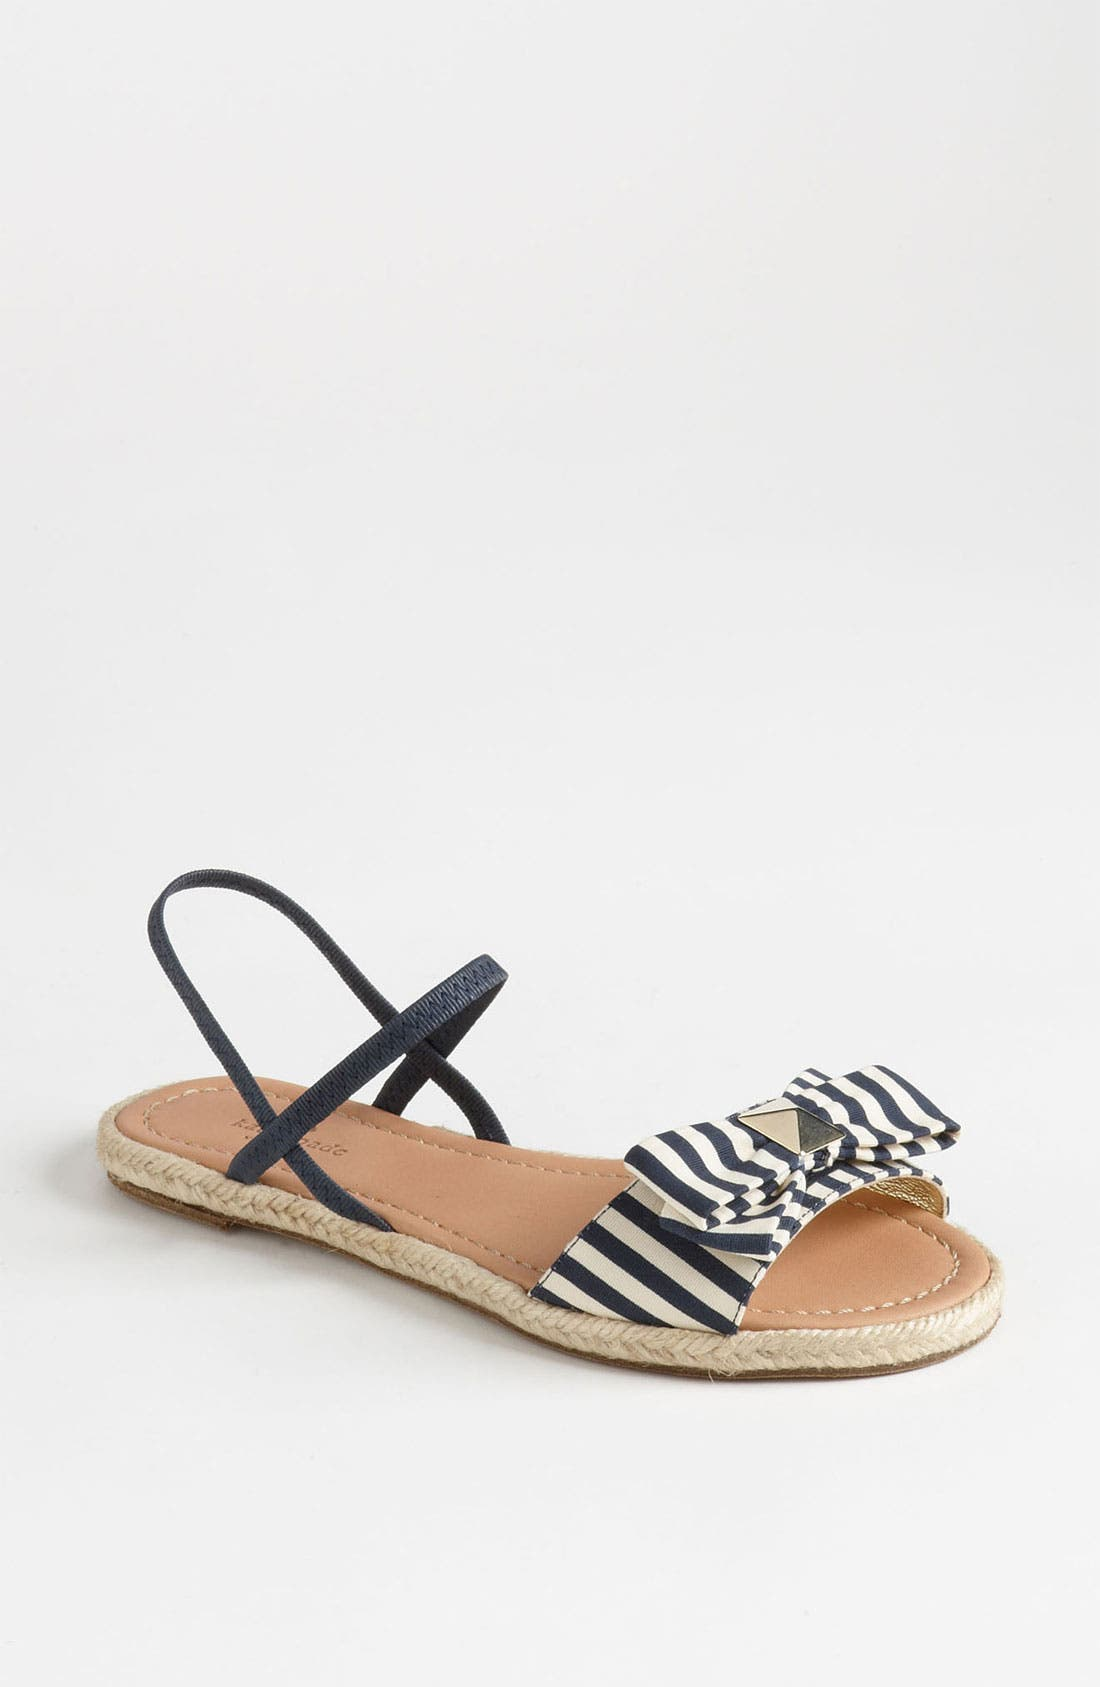 Alternate Image 1 Selected - kate spade new york 'cece' sandal